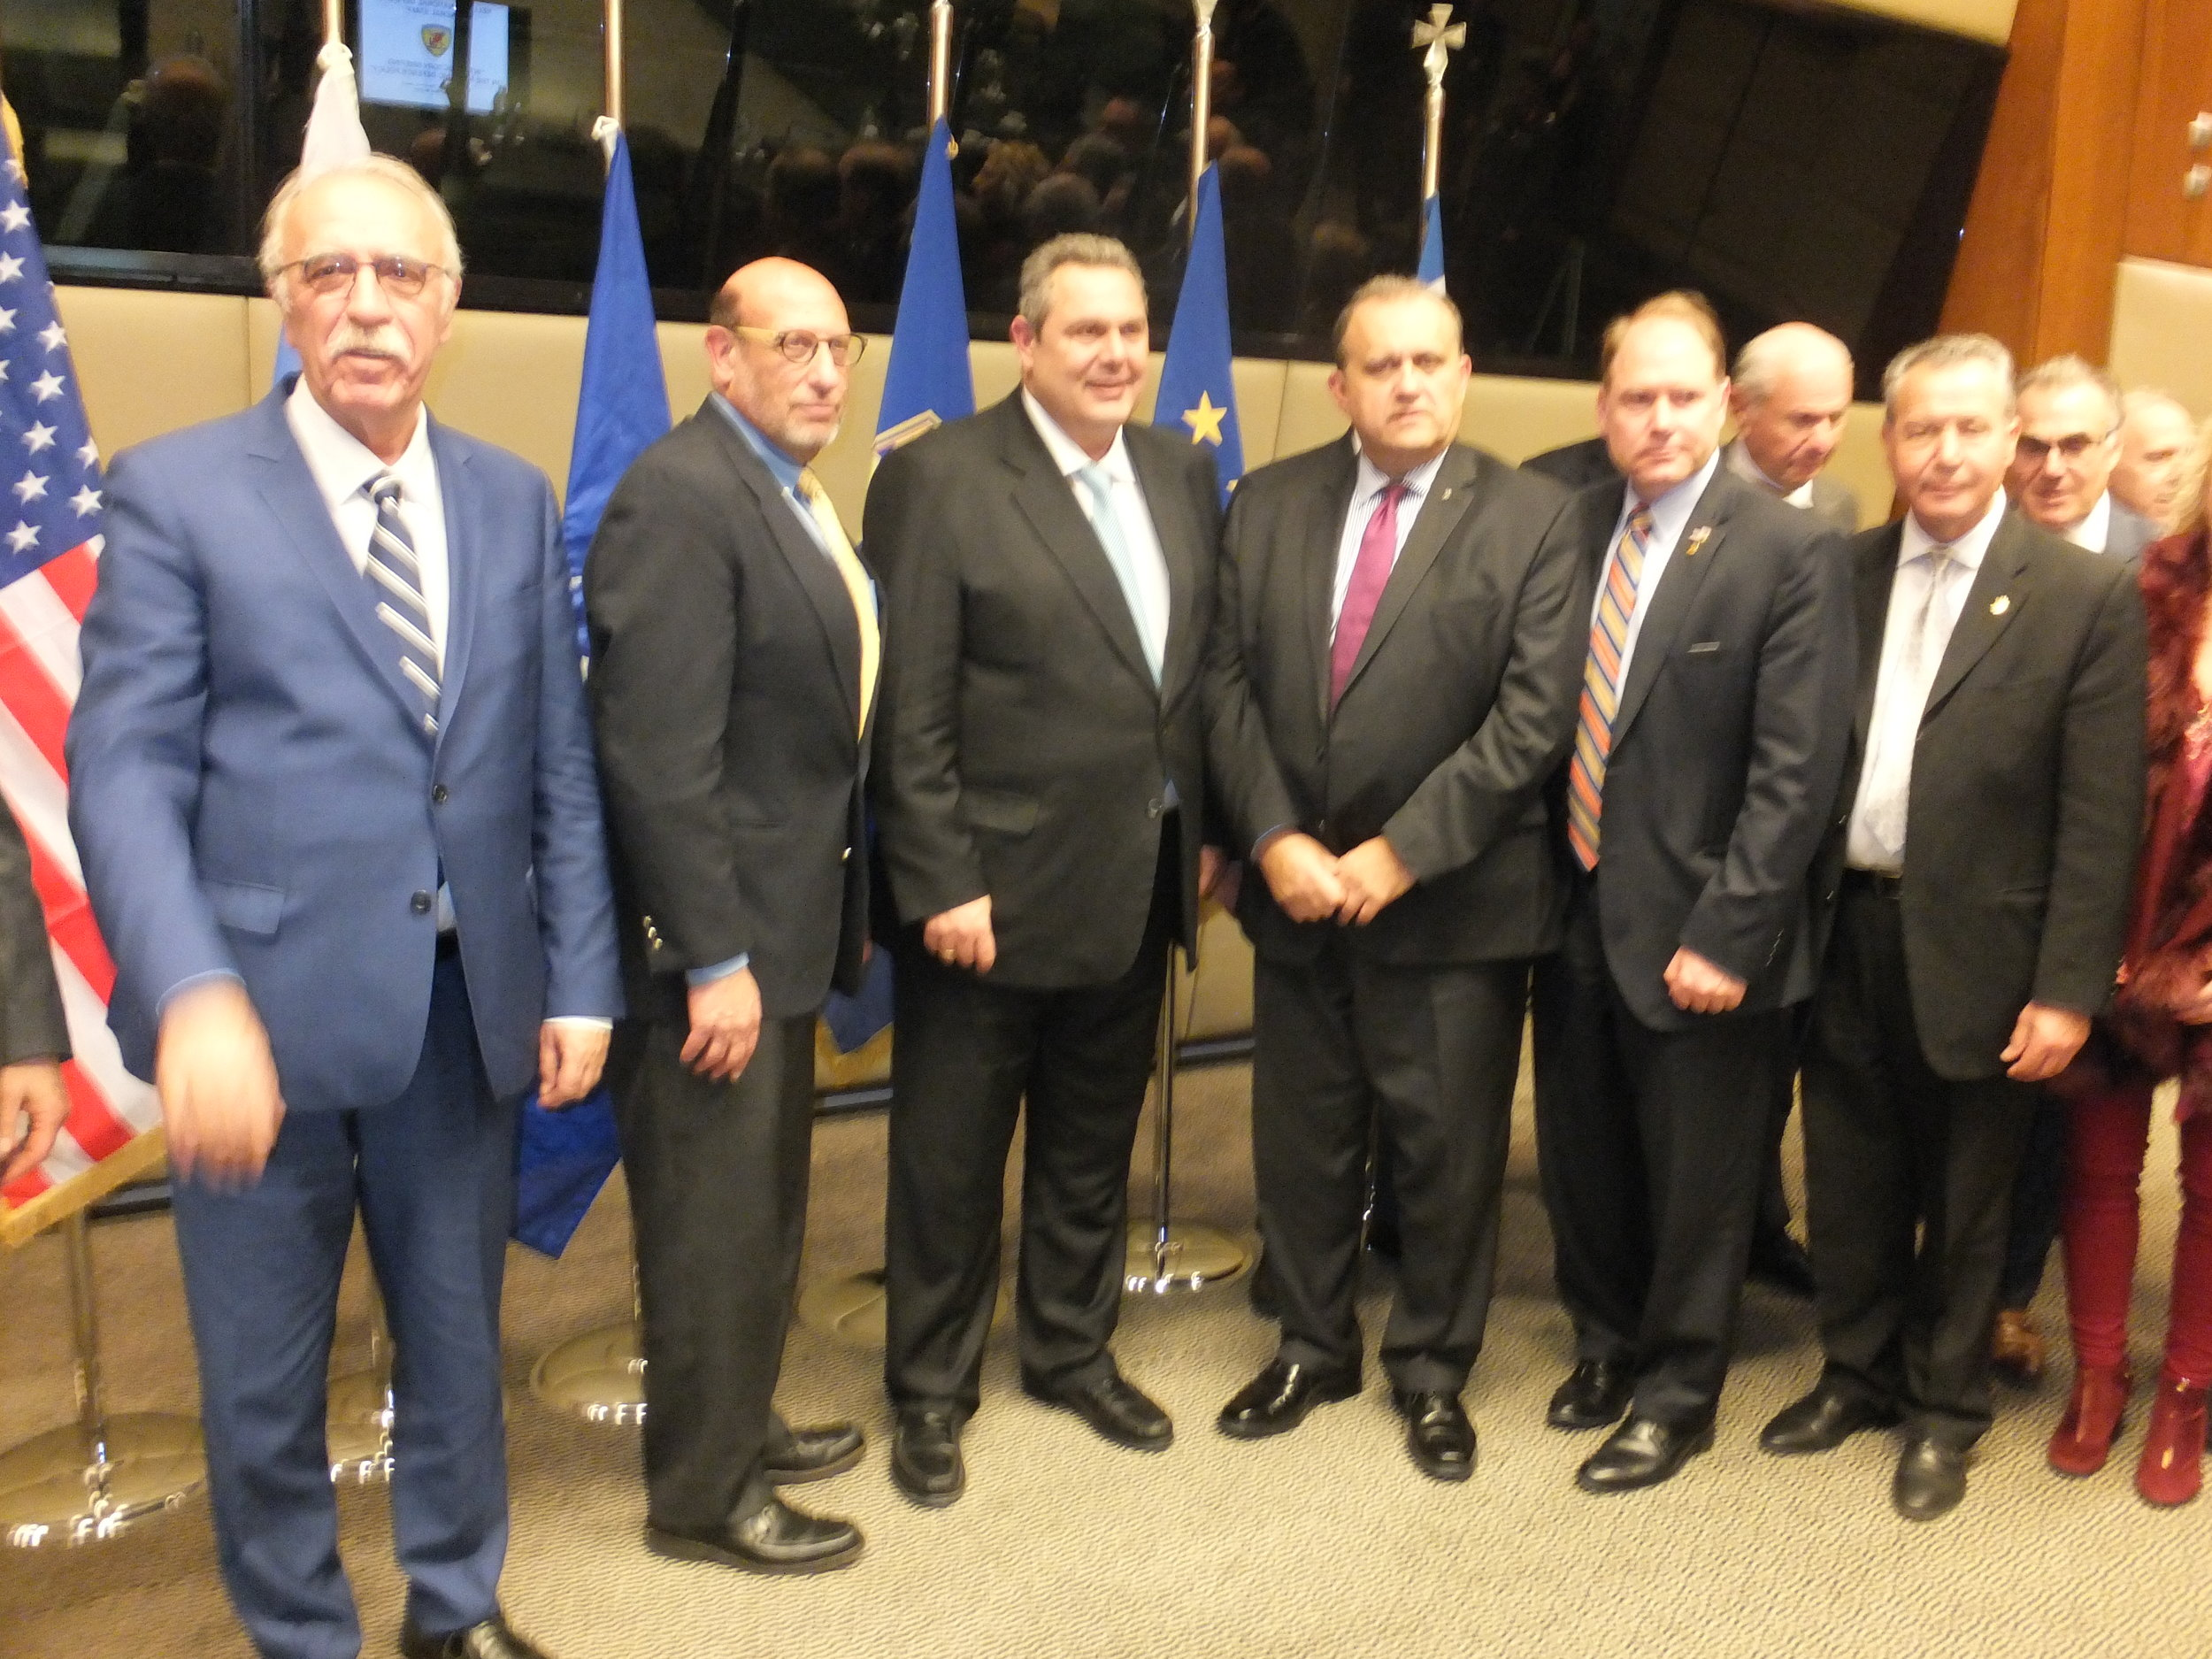 Alternate Minister of Defense Dimitri Vitsas (L) and Defense Minister Panos Kammenos (third from left) with the delegation heads.